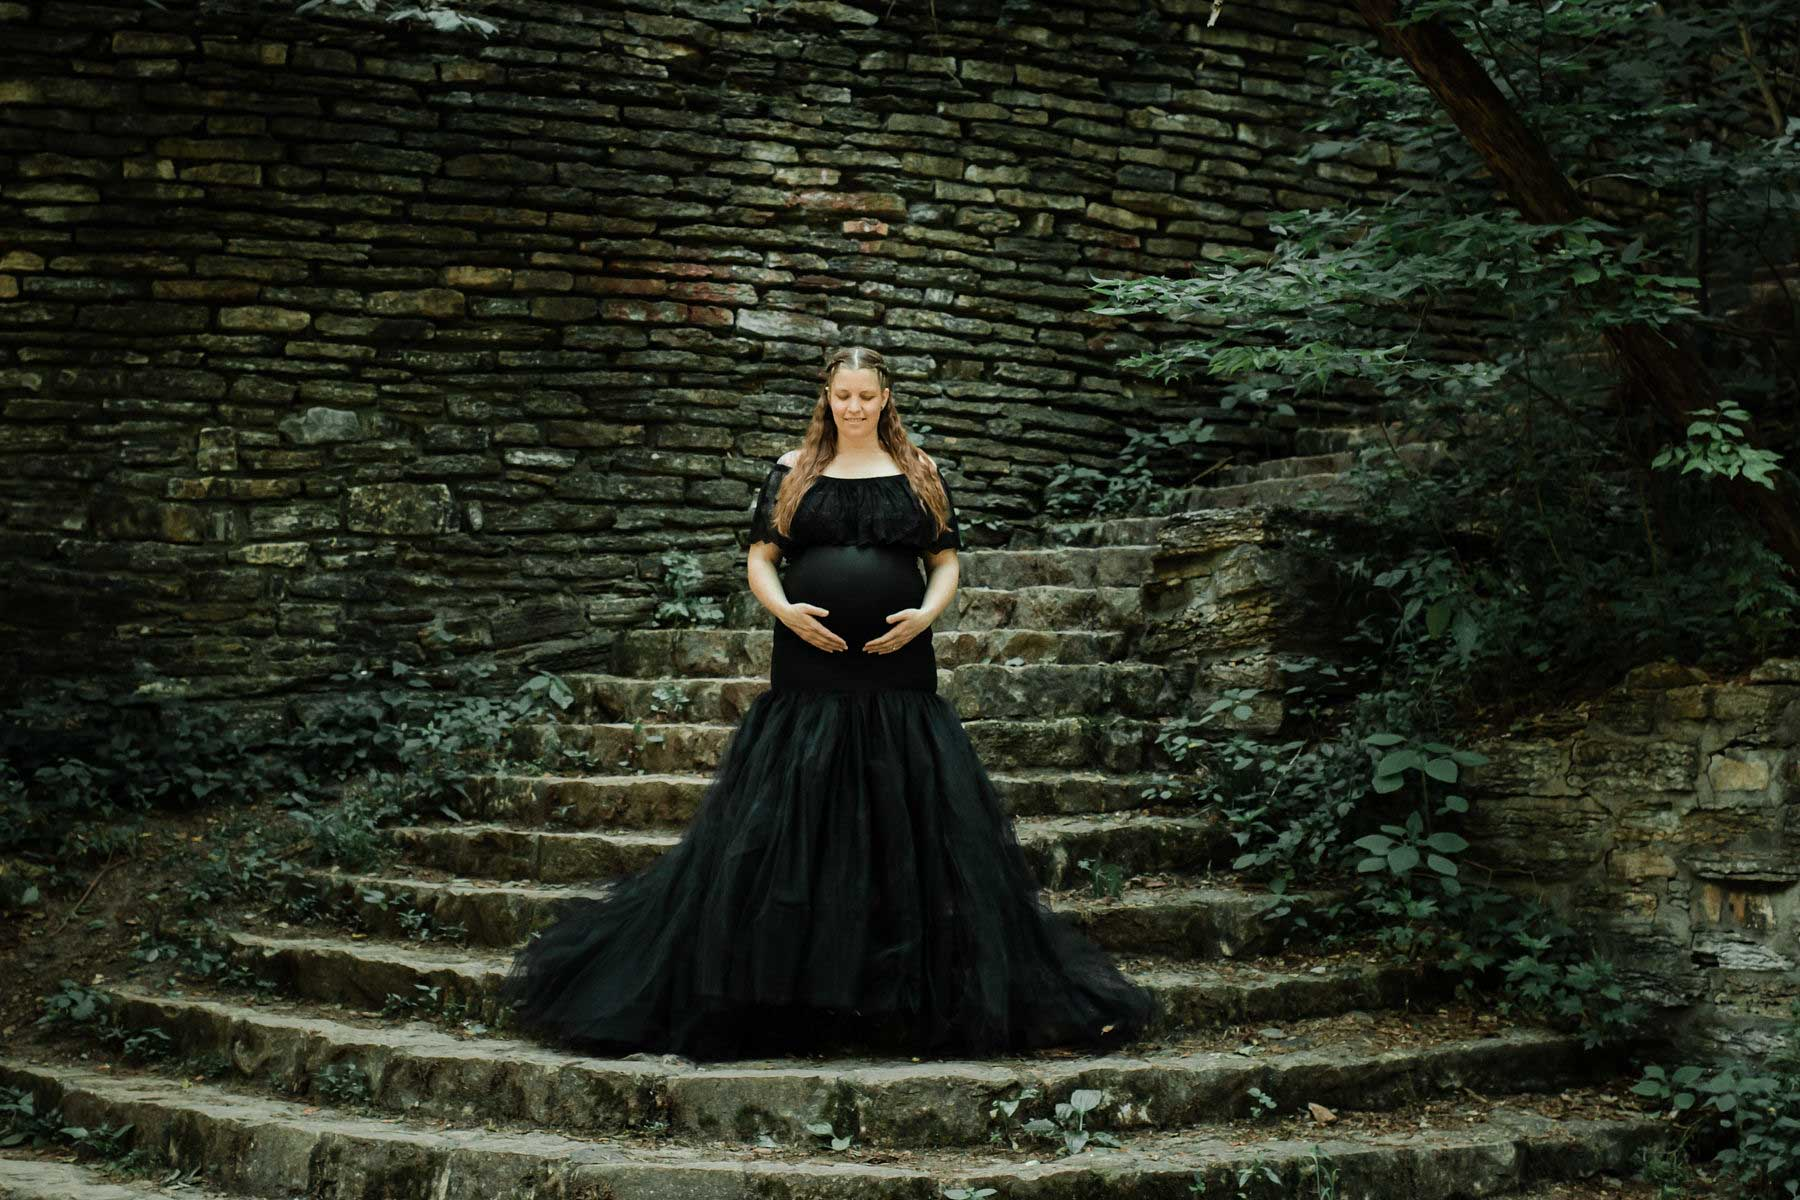 maternity photography session in black tulle gown on moss covered stairway minneapolis maternity studio